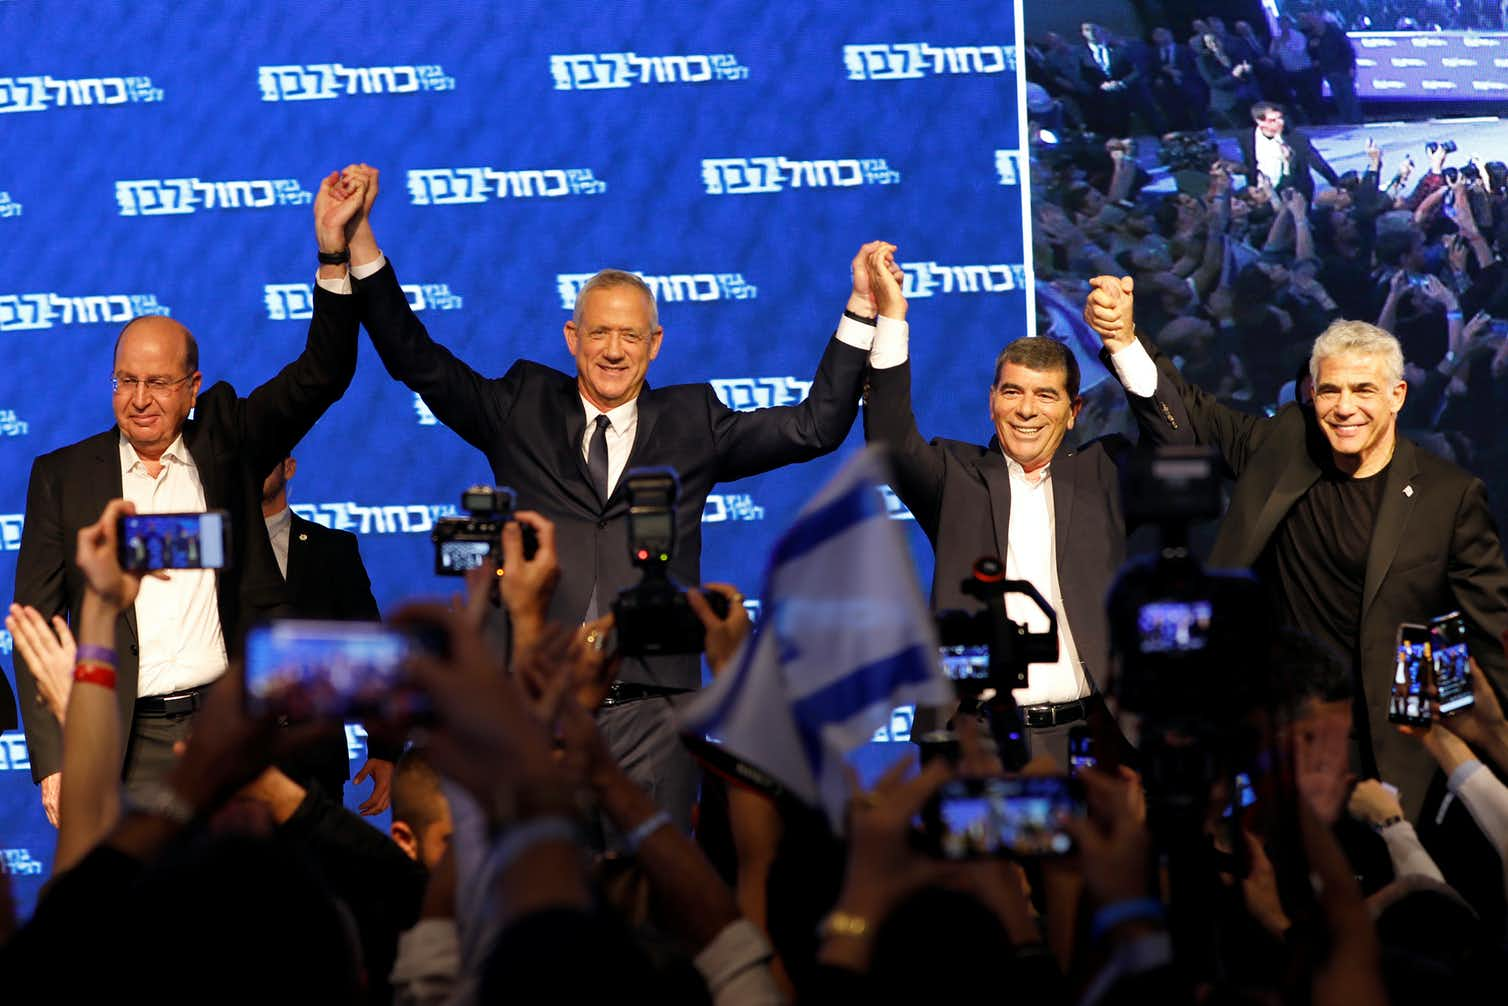 Benny Gantz, head of Blue and White party, holds hands with his party candidates Yair Lapid, Moshe Ya'alon and Gabi Ashkenazi, as they react to exit polls in Tel Aviv, Israel on election day. Photo credit: Corinna Kern/Reuters